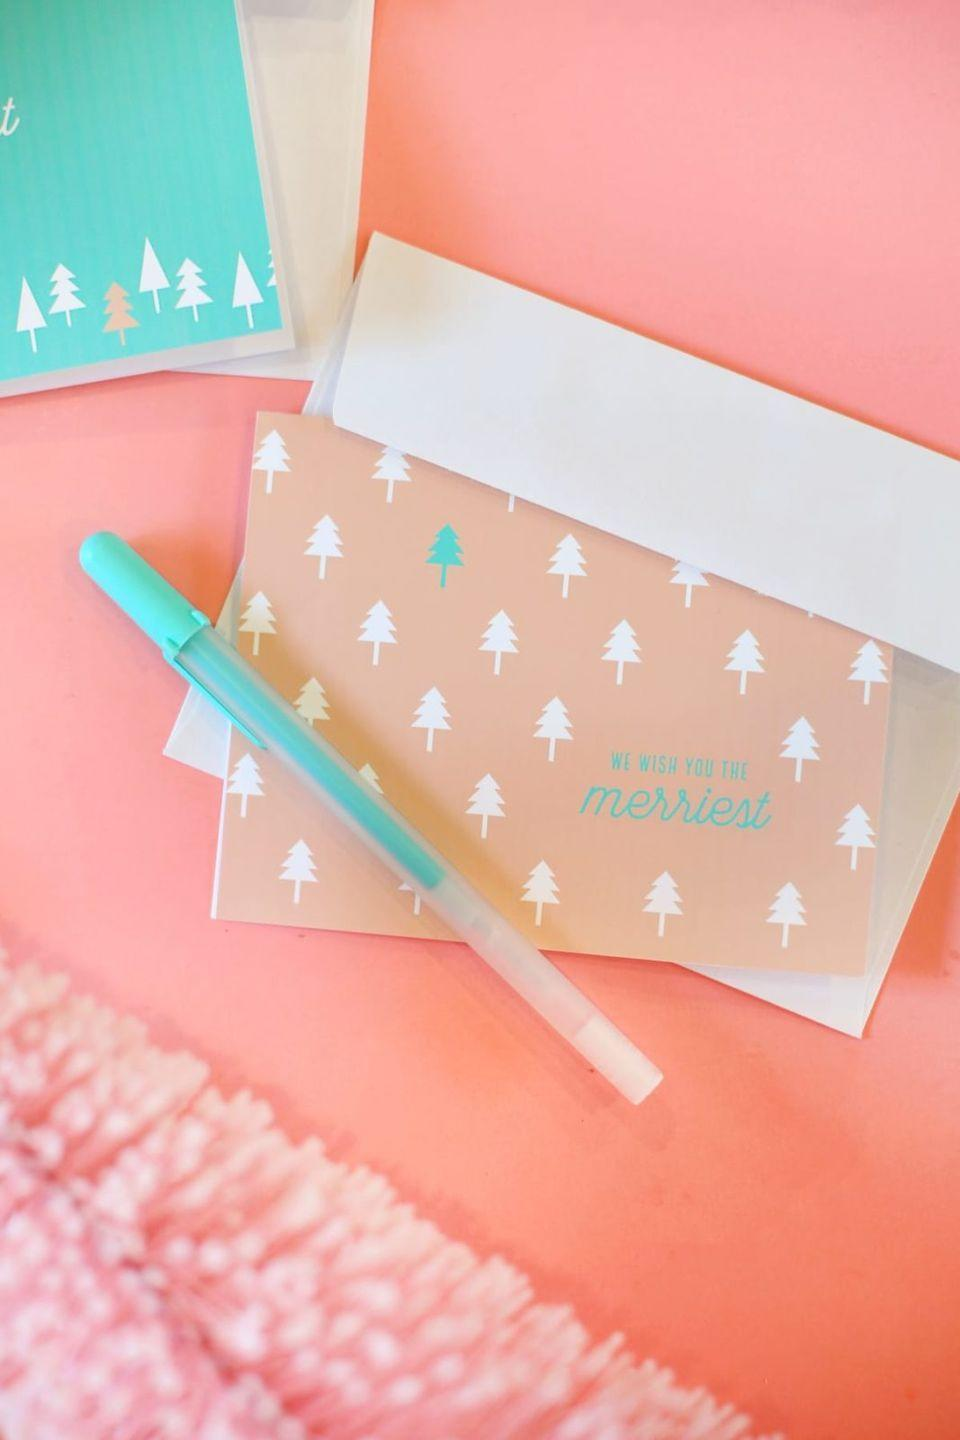 """<p>Rather than splurge on a set of Christmas stationery, opt to print these graphic cards at home—for free. </p><p><em>Get the tutorial at <a href=""""https://lovelyindeed.com/printable-christmas-cards/"""" rel=""""nofollow noopener"""" target=""""_blank"""" data-ylk=""""slk:Lovely Indeed"""" class=""""link rapid-noclick-resp"""">Lovely Indeed</a>.</em></p><p><a class=""""link rapid-noclick-resp"""" href=""""https://www.amazon.com/Greeting-Cards-Heavyweight-Invitations-Anniversary/dp/B00L6RPFZ6?tag=syn-yahoo-20&ascsubtag=%5Bartid%7C10072.g.34351112%5Bsrc%7Cyahoo-us"""" rel=""""nofollow noopener"""" target=""""_blank"""" data-ylk=""""slk:SHOP BLANK CARDS"""">SHOP BLANK CARDS</a><br></p>"""